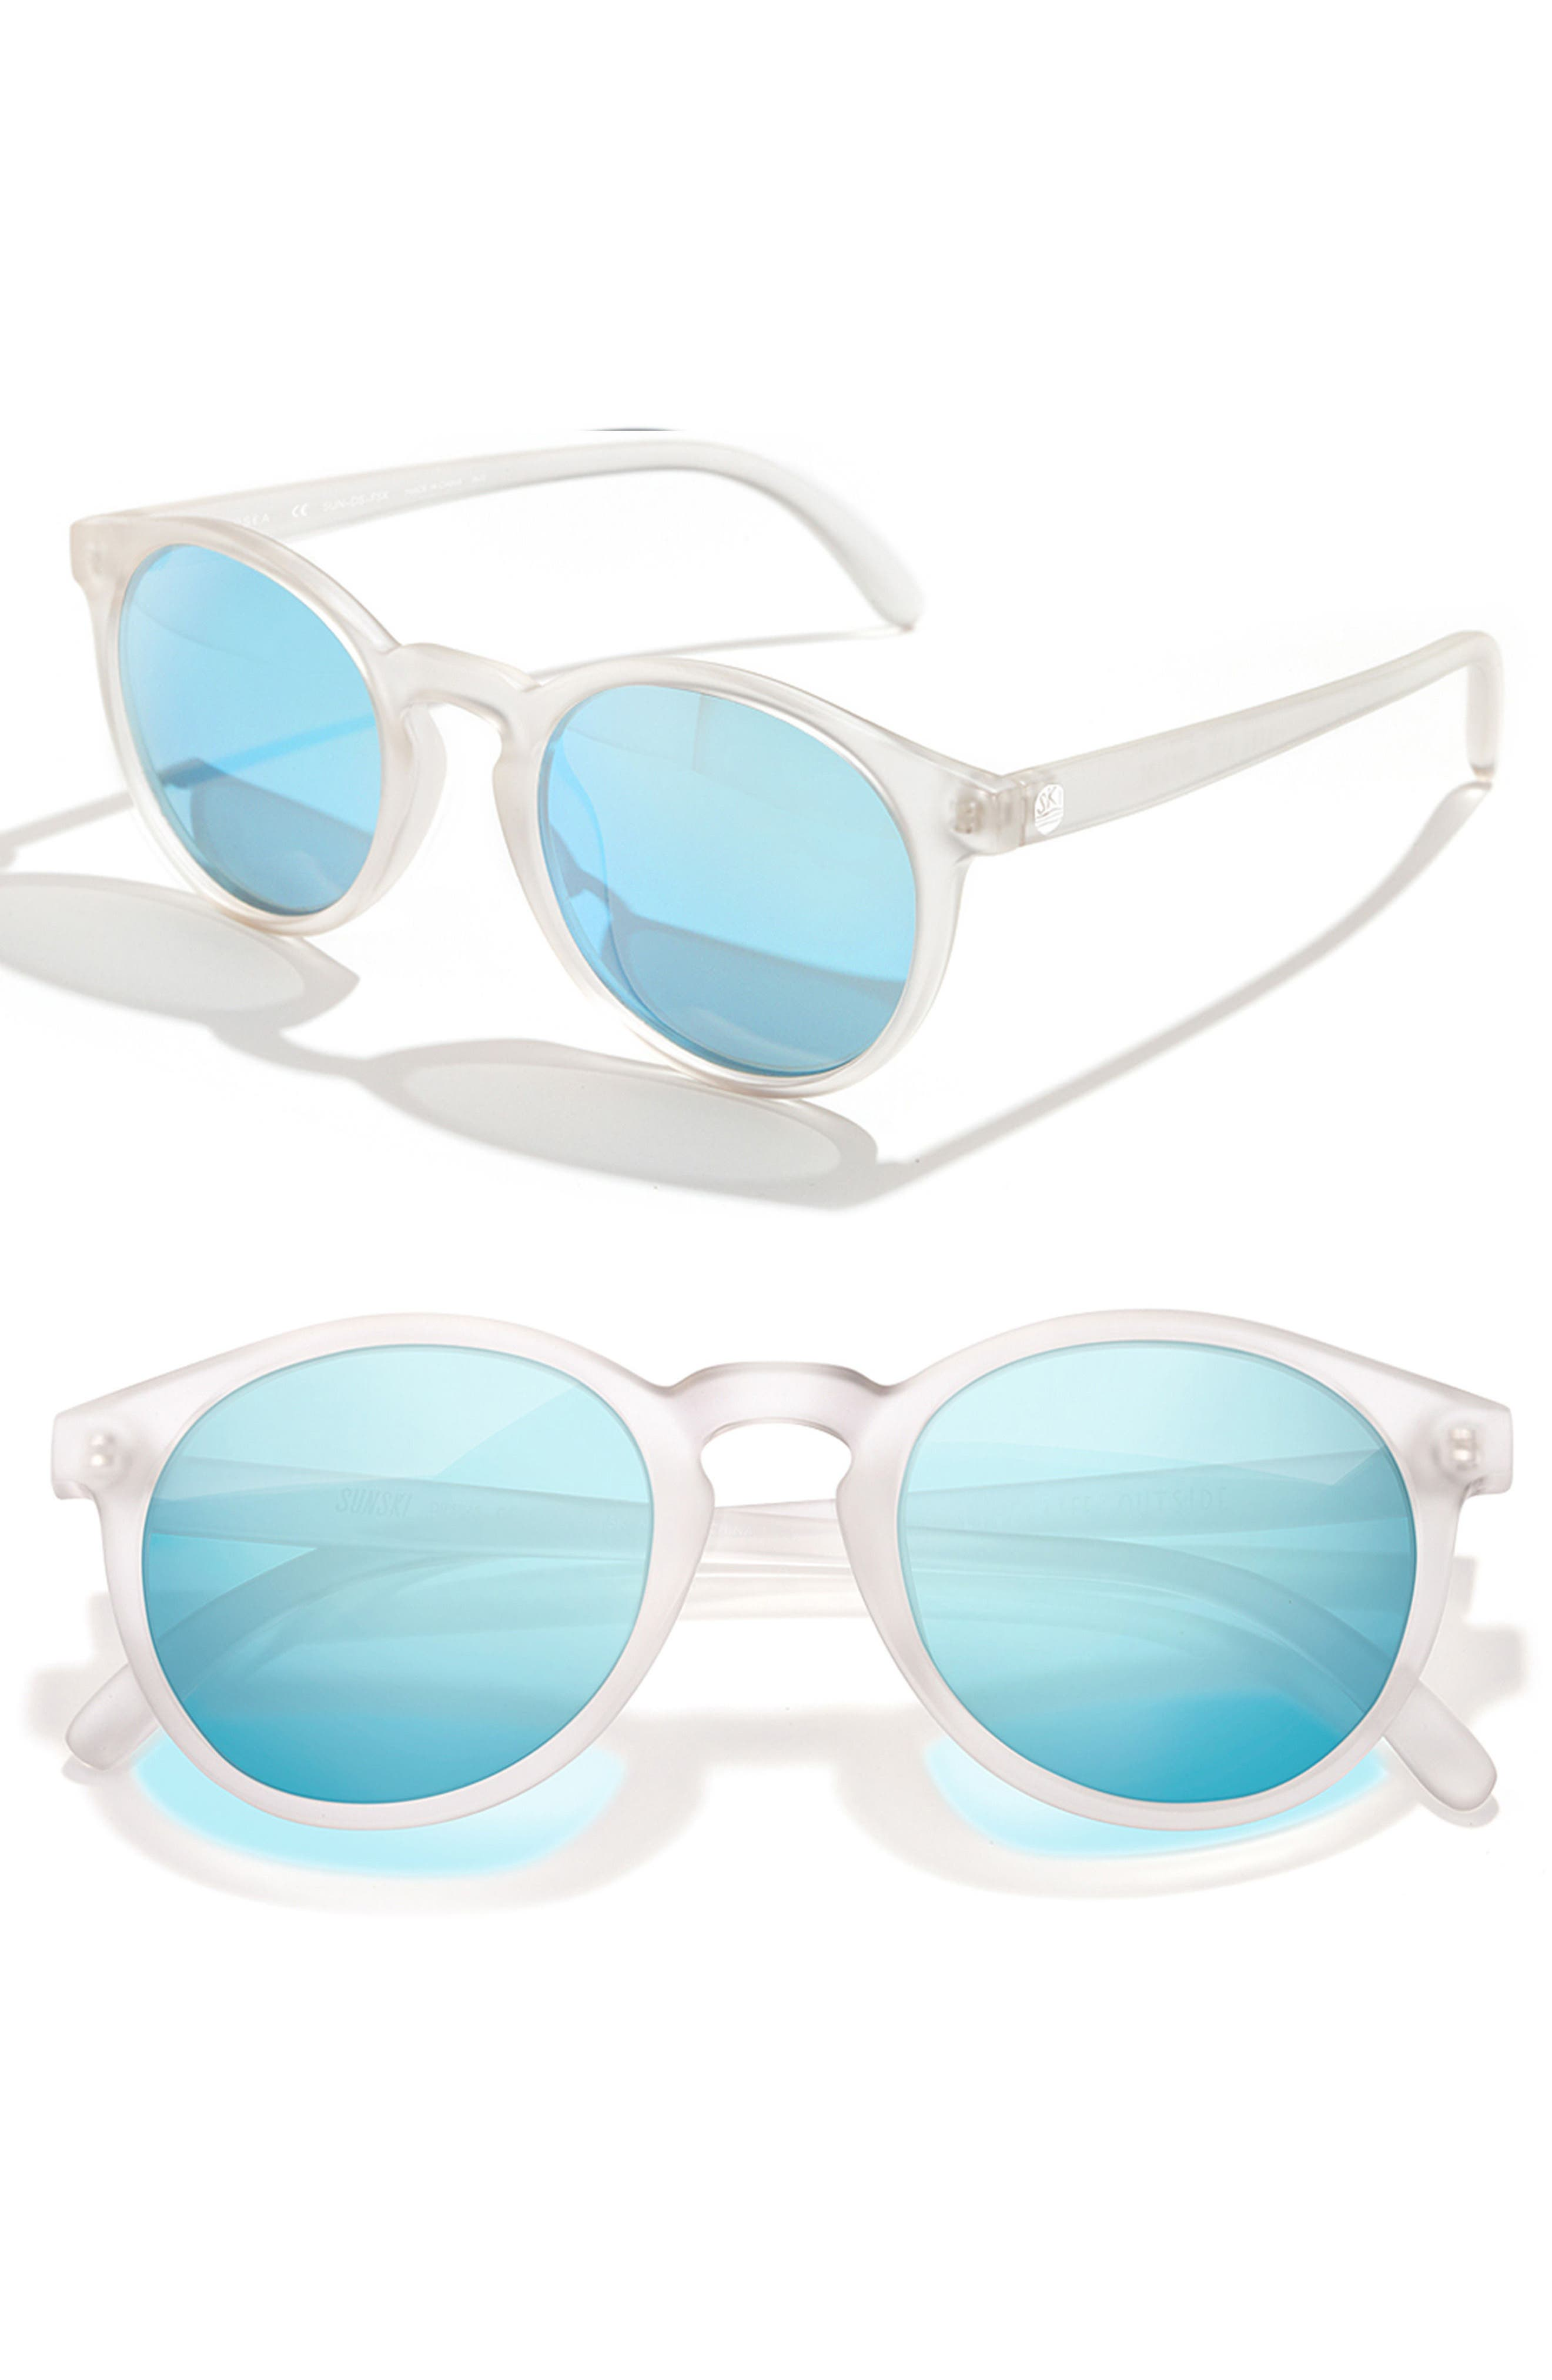 Dipsea 48mm Polarized Sunglasses,                             Main thumbnail 1, color,                             FROSTED SKY